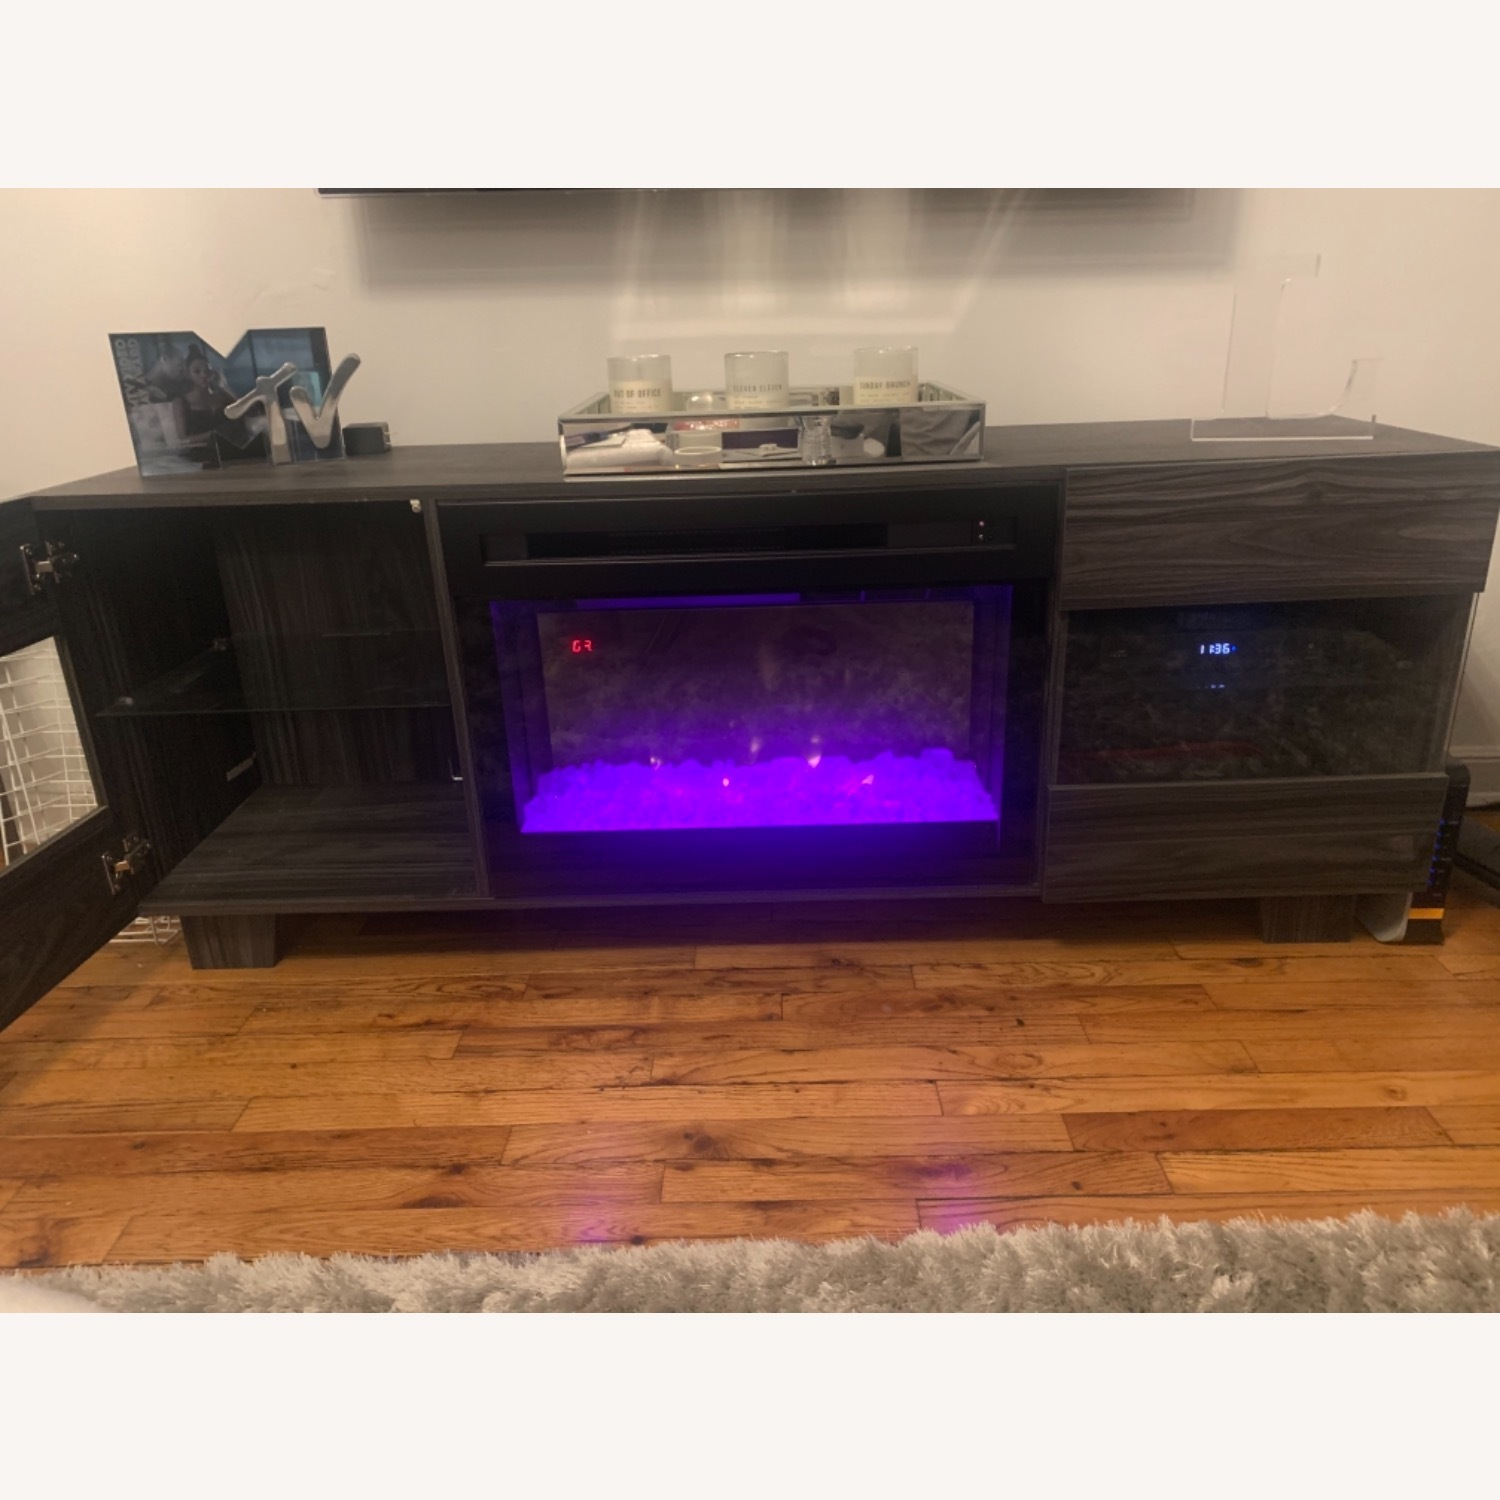 Wayfair Max TV Stand with Electric Fireplace by Dimplex - image-9